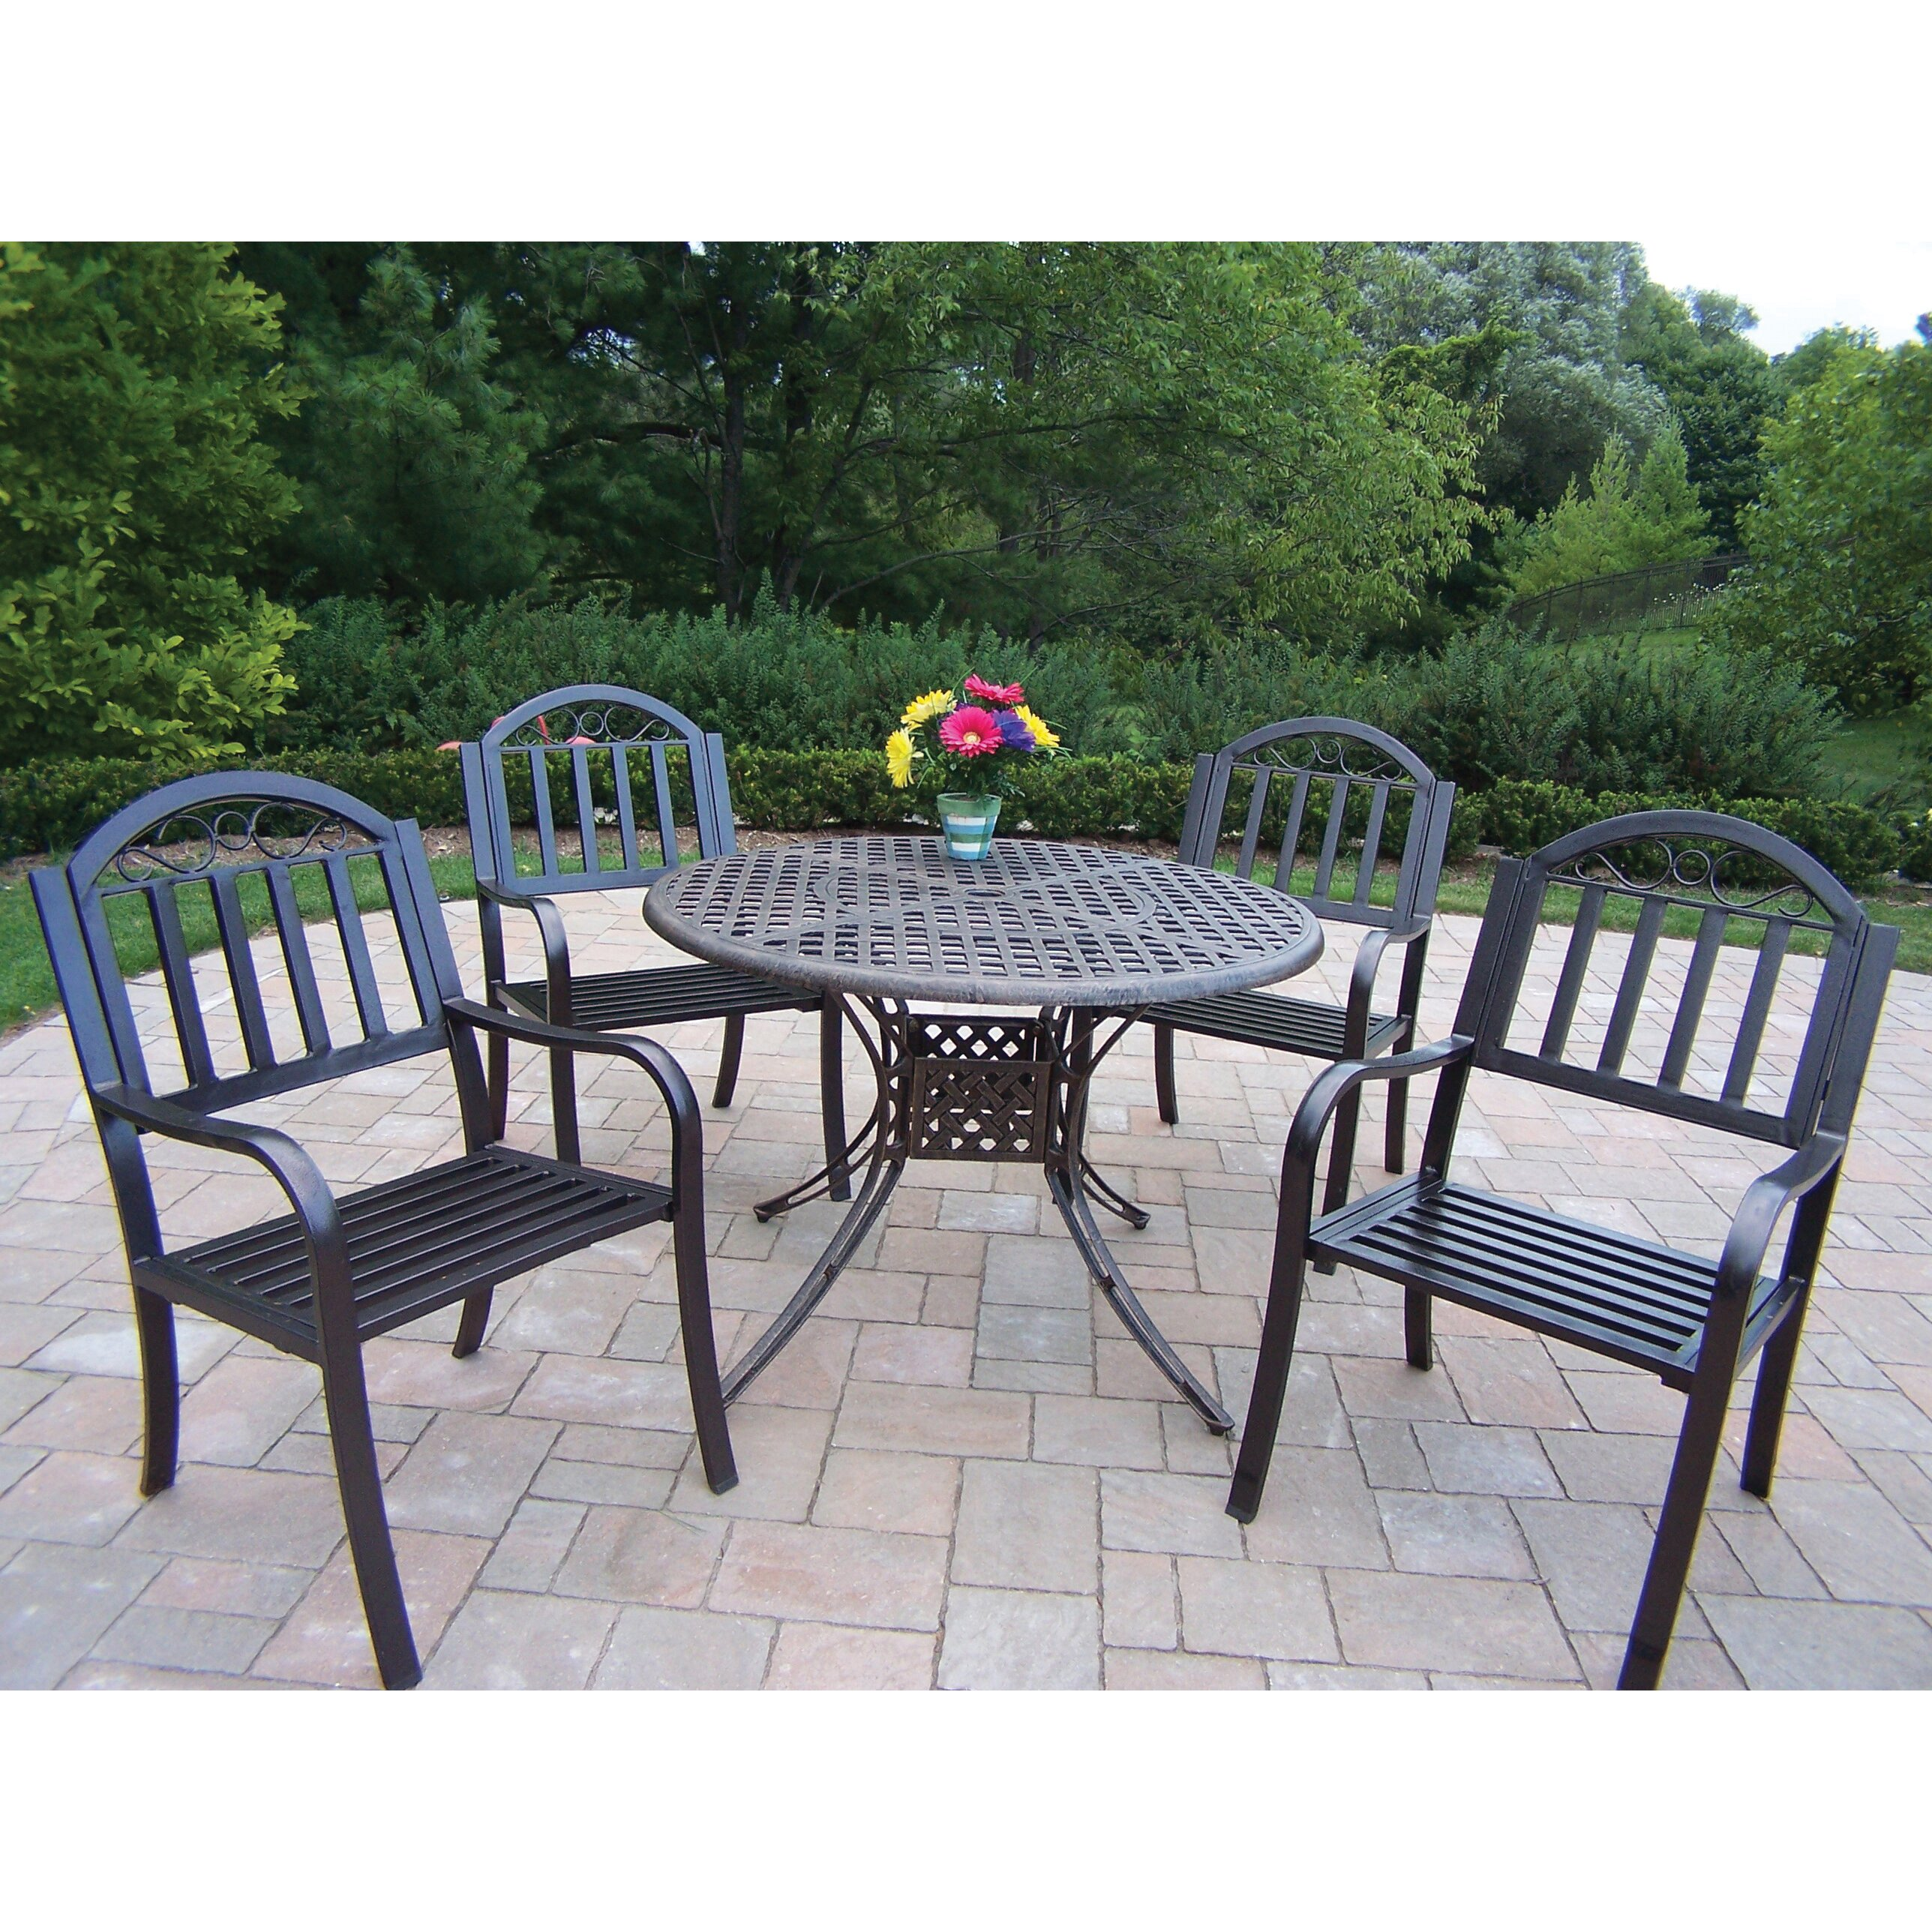 Outdoor Patio Furniture Rochester Ny: Elite Rochester Dining Set